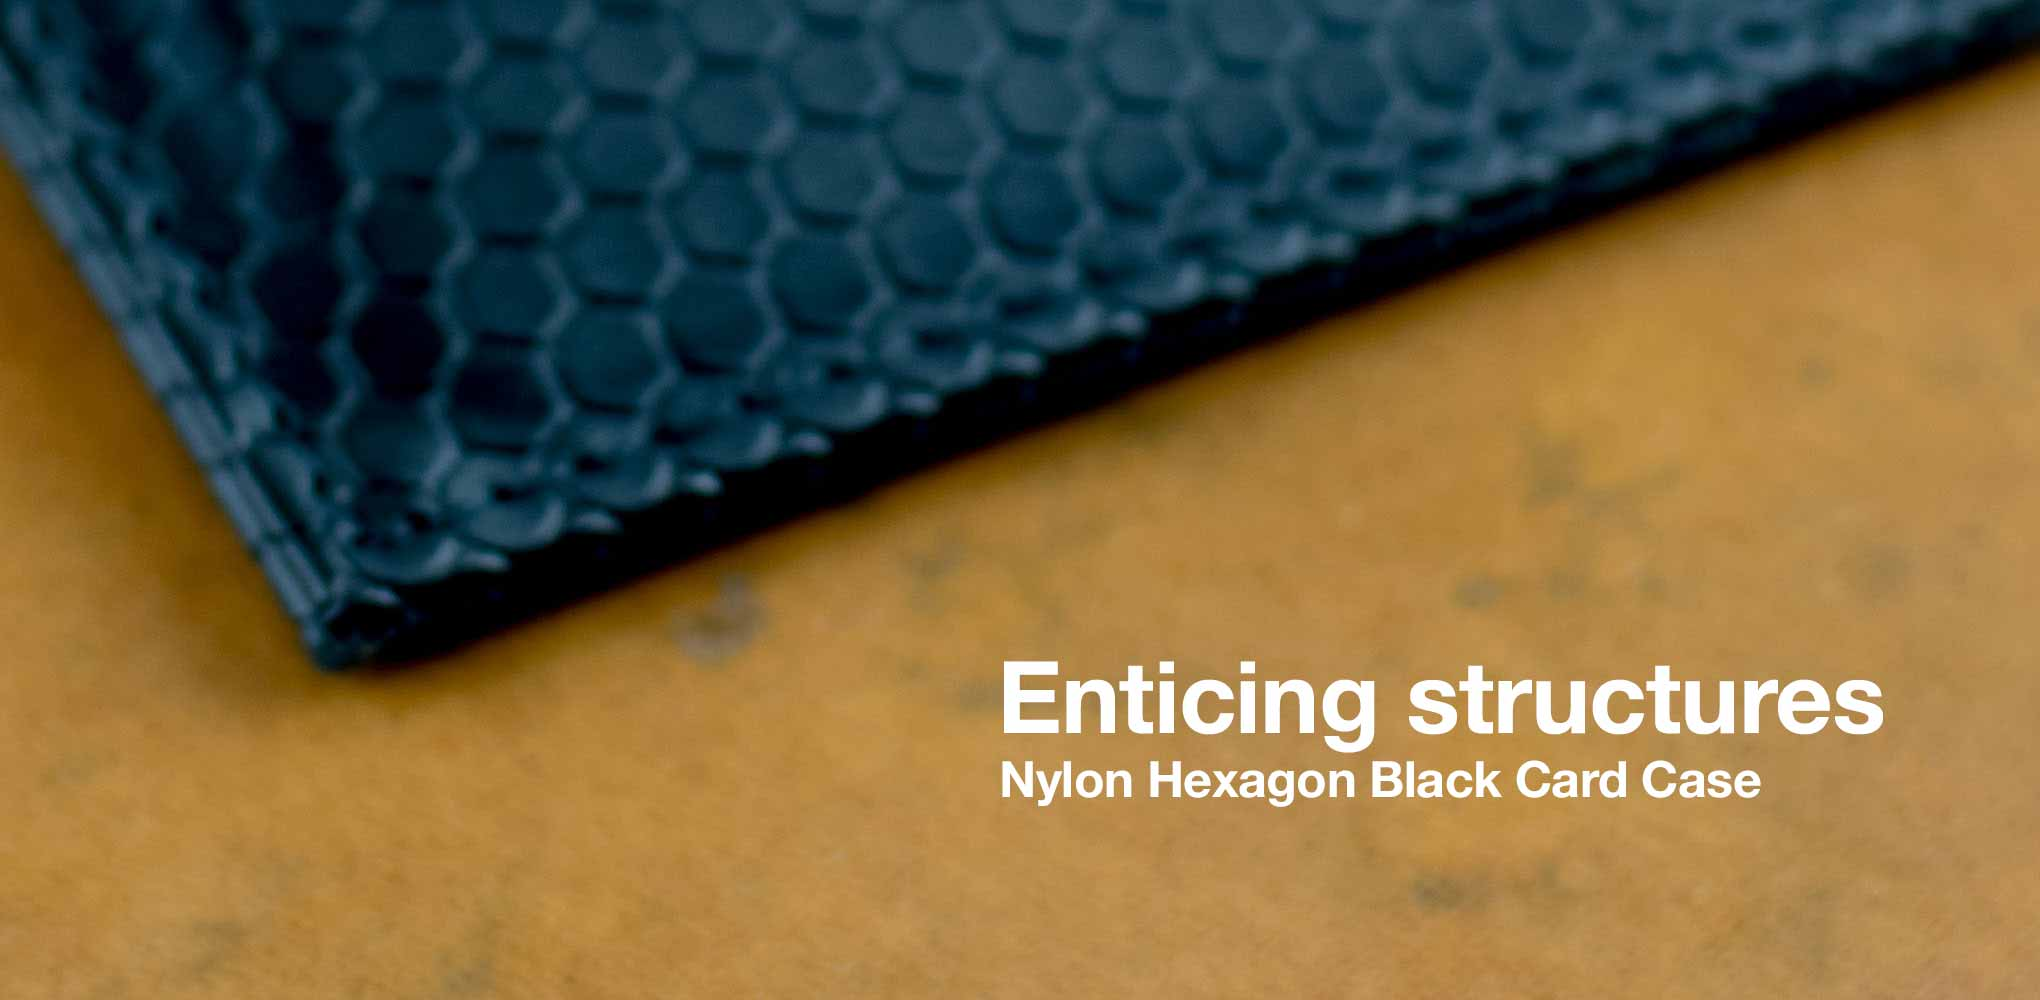 Enticing Structures / Nylon Hexagon Black Card Case